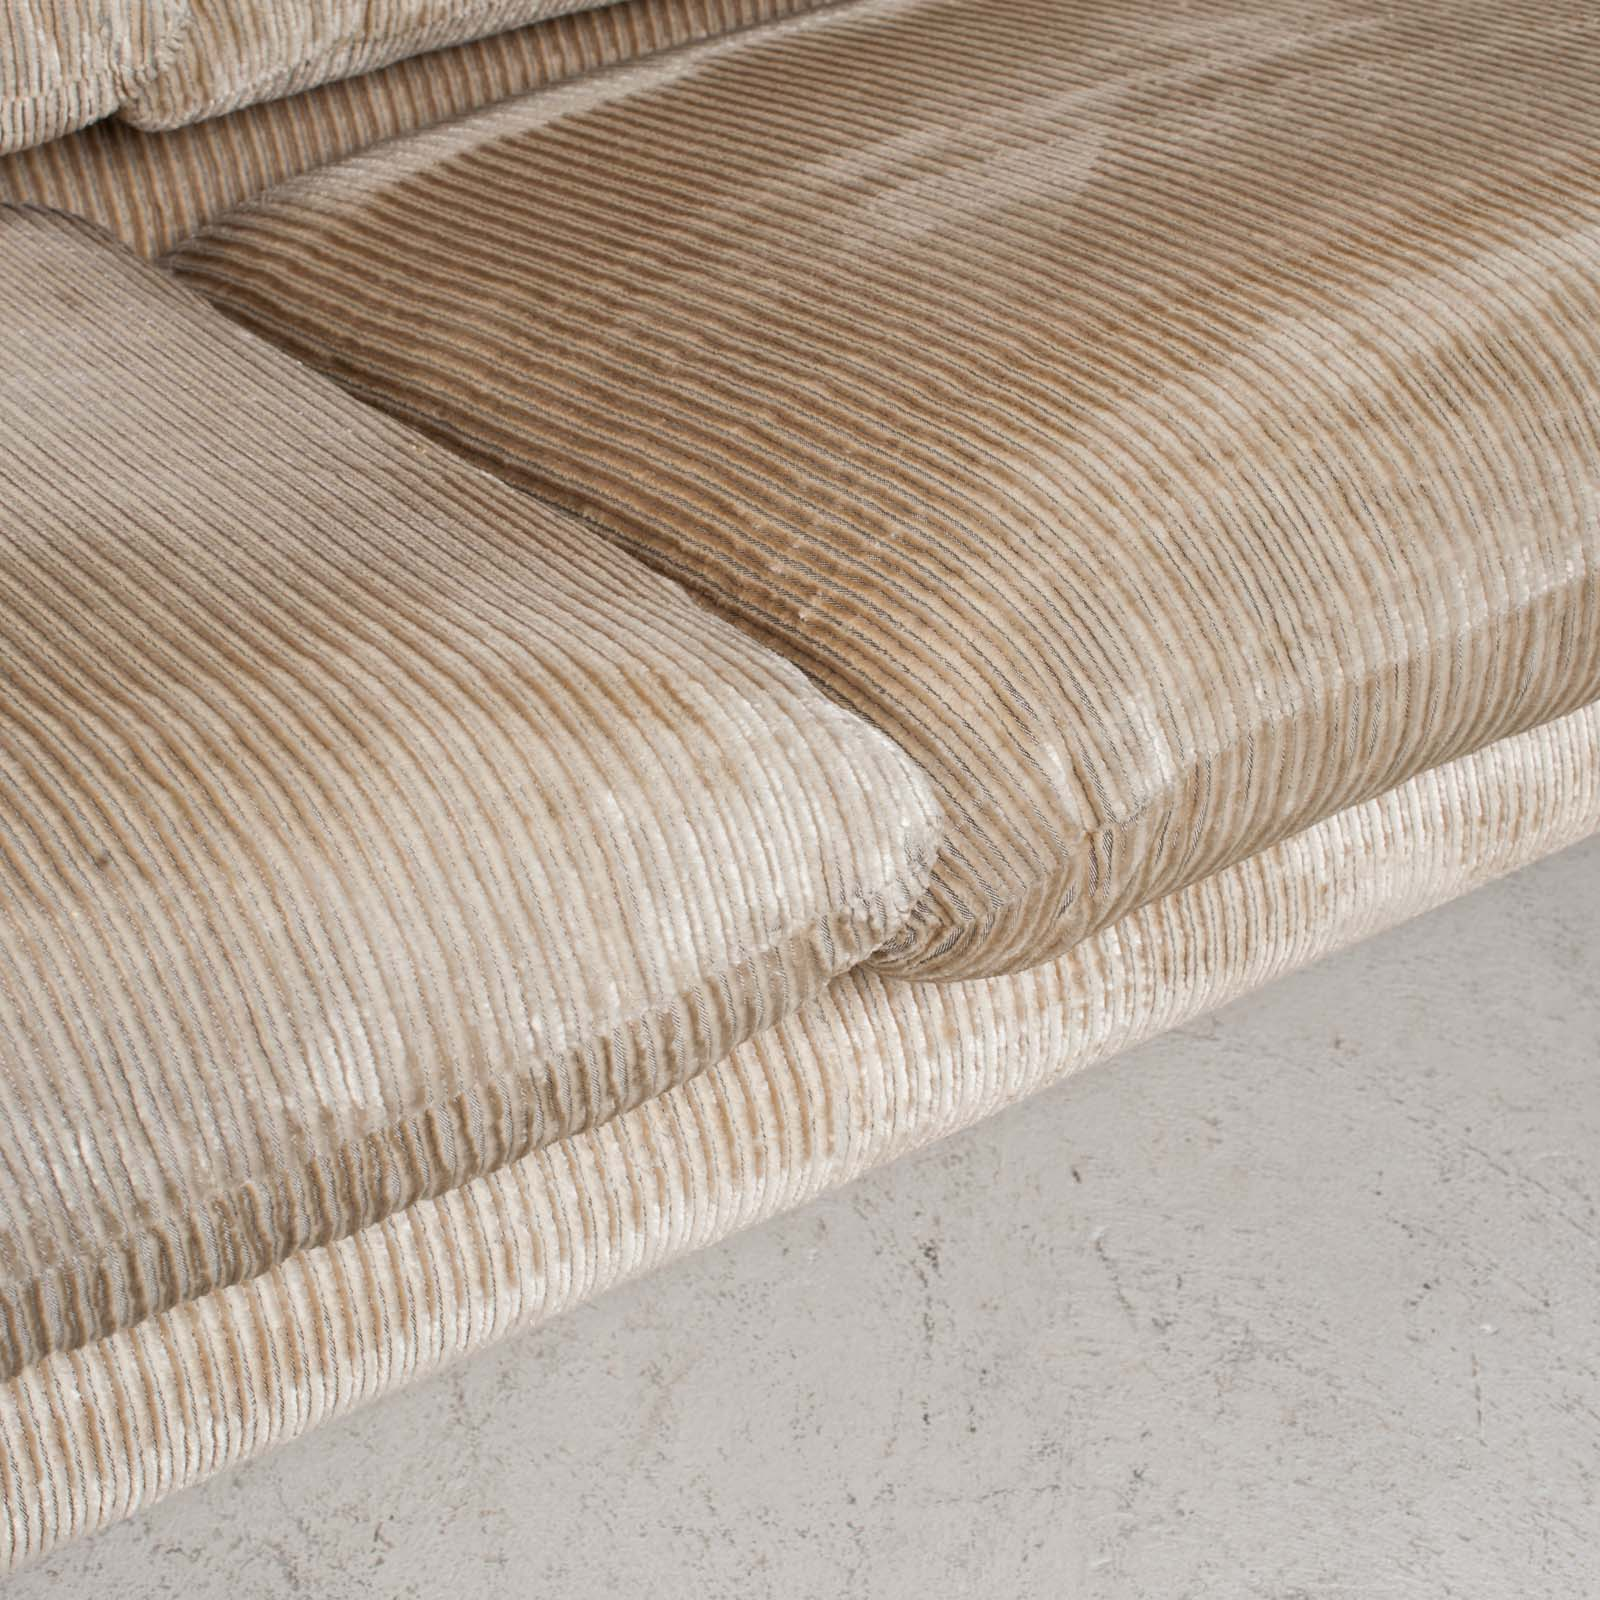 Maralunga 3 Seat Sofa By Vico Magistretti For Cassina In Original Upholstery 1970s Italy 019